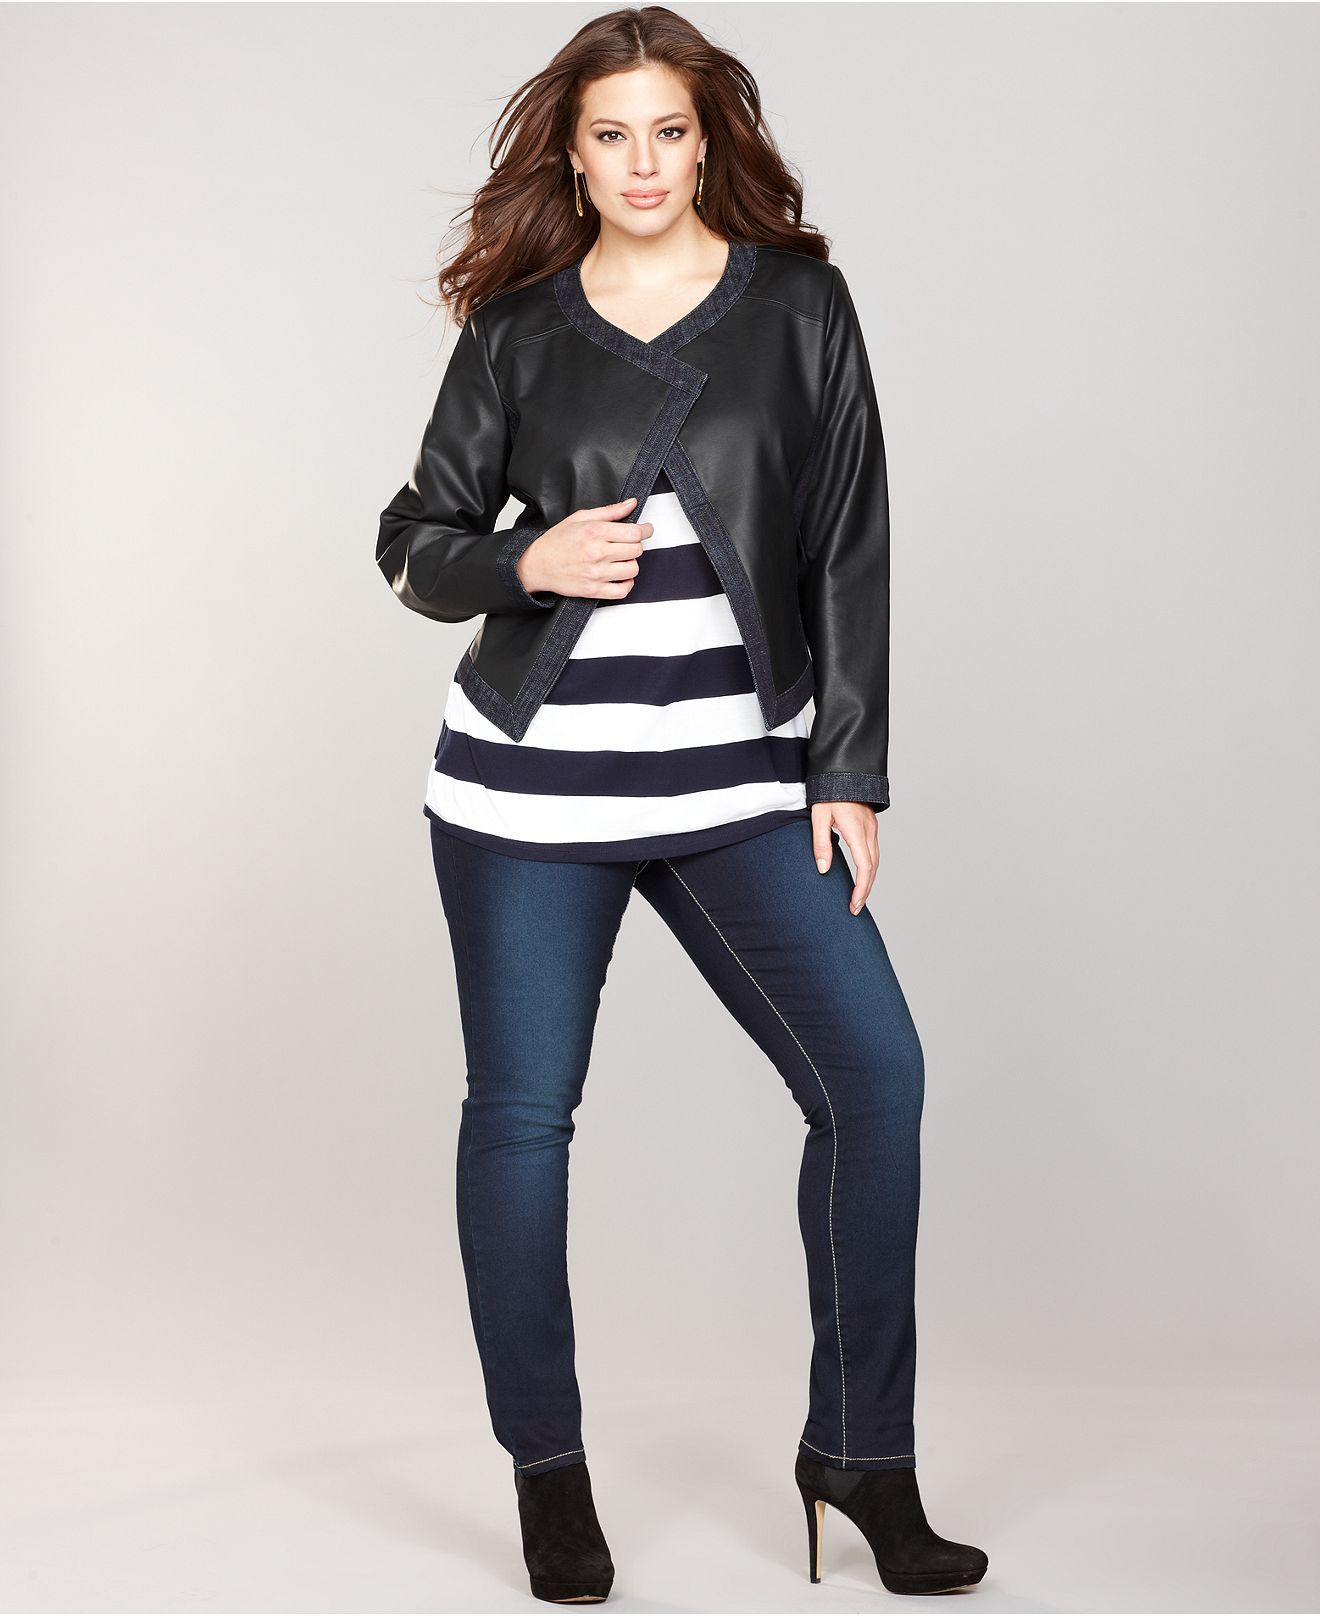 INC Plus Size Faux-Leather Jacket, Striped Top & Skinny Faded Jeans